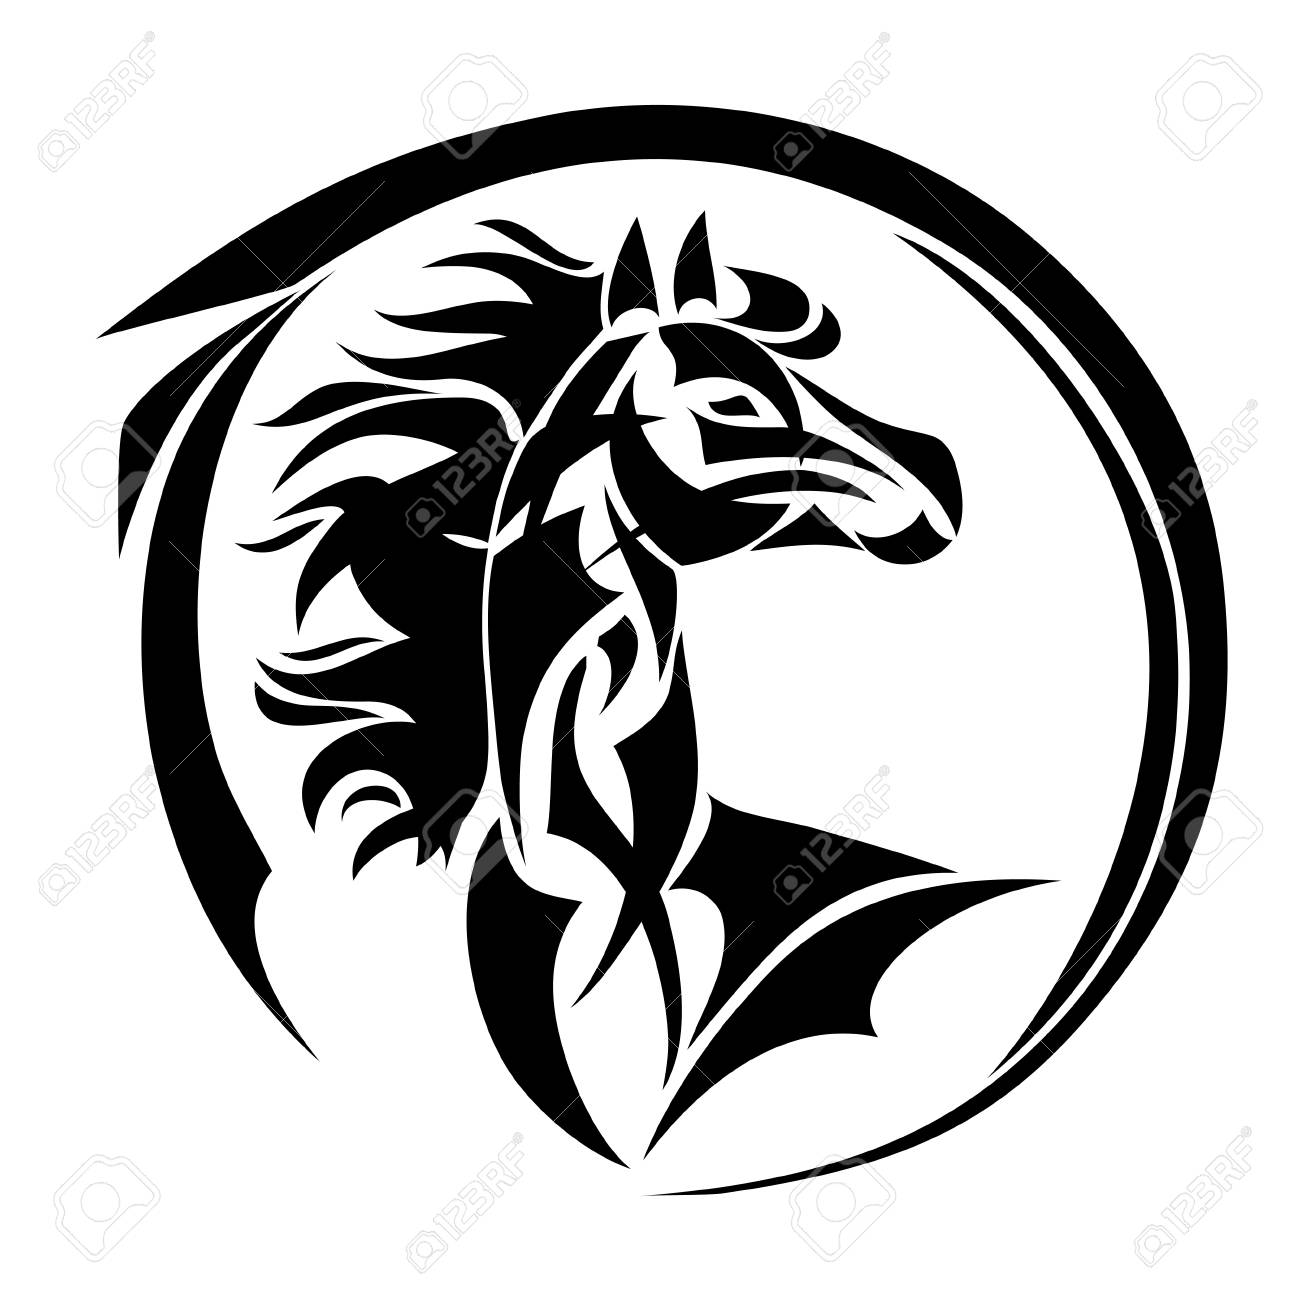 horse head vector tattoo stylized illustration for design of rh 123rf com horse head vector free download horse head vector png